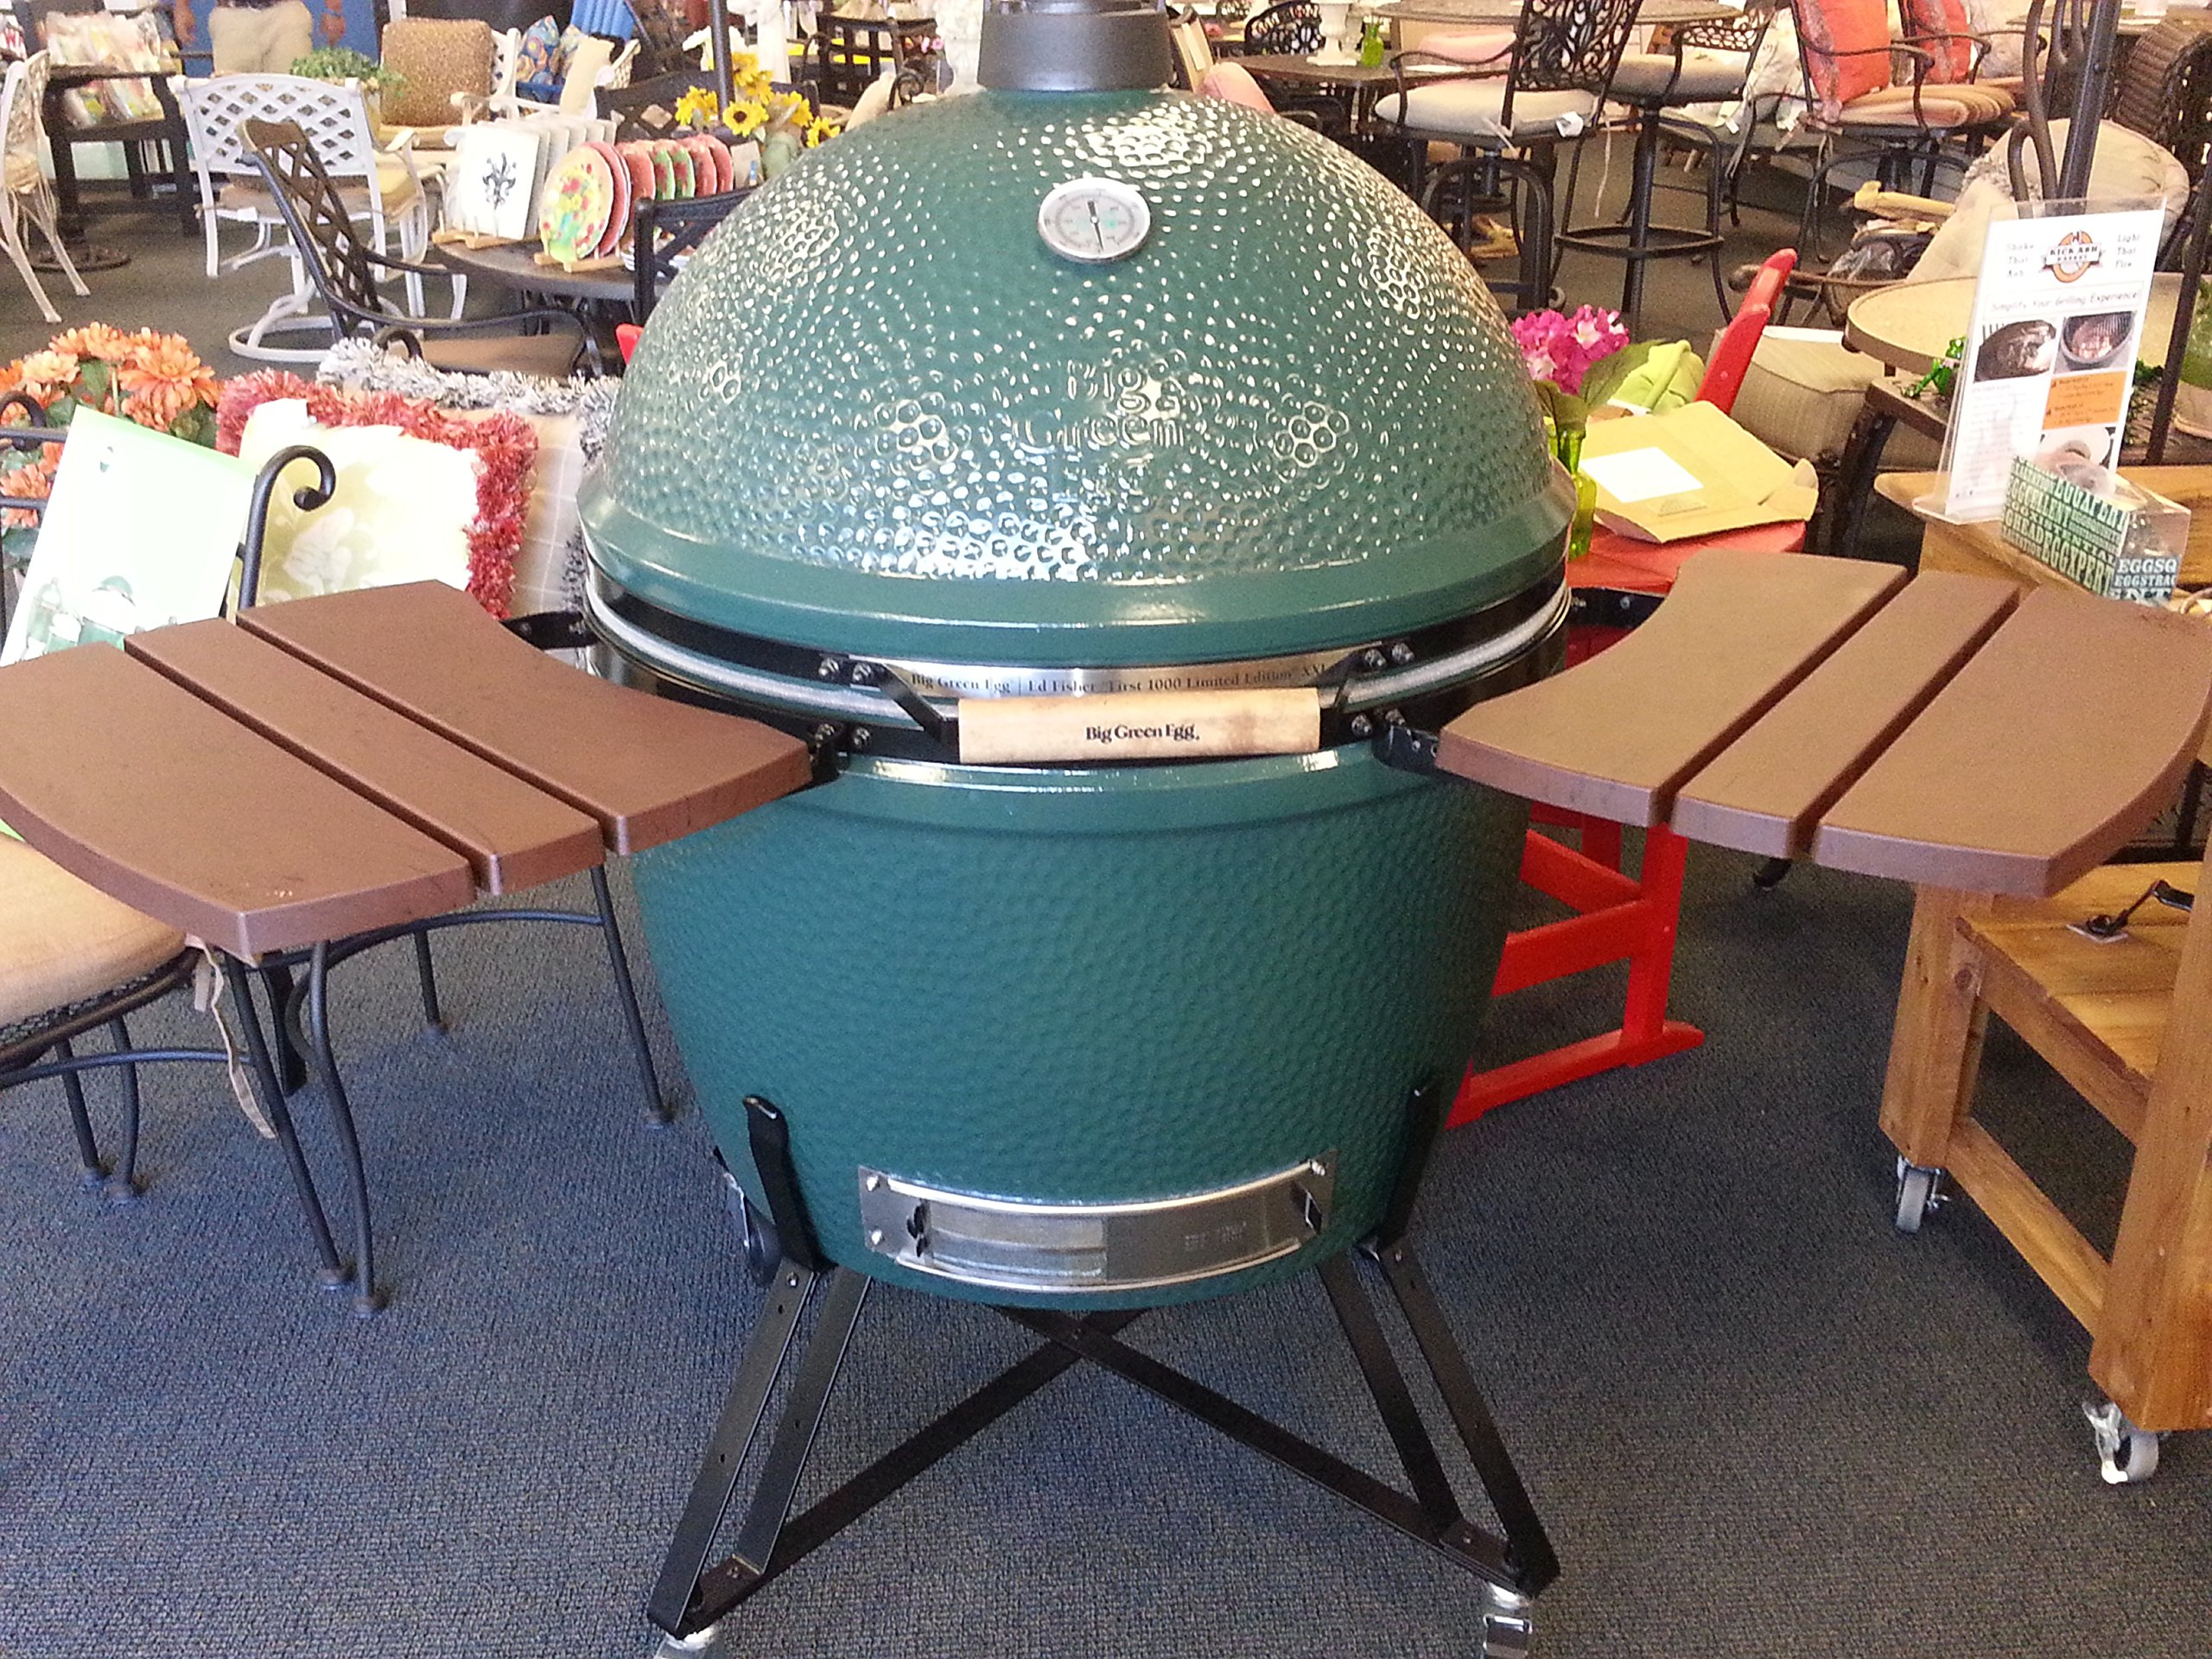 Big Green Egg Composite Shelves EGG Mates for Small to XX Large (2 shelves with three slats) Authentic Grill & Smoker Accessories, A Must For Users (X-Large)